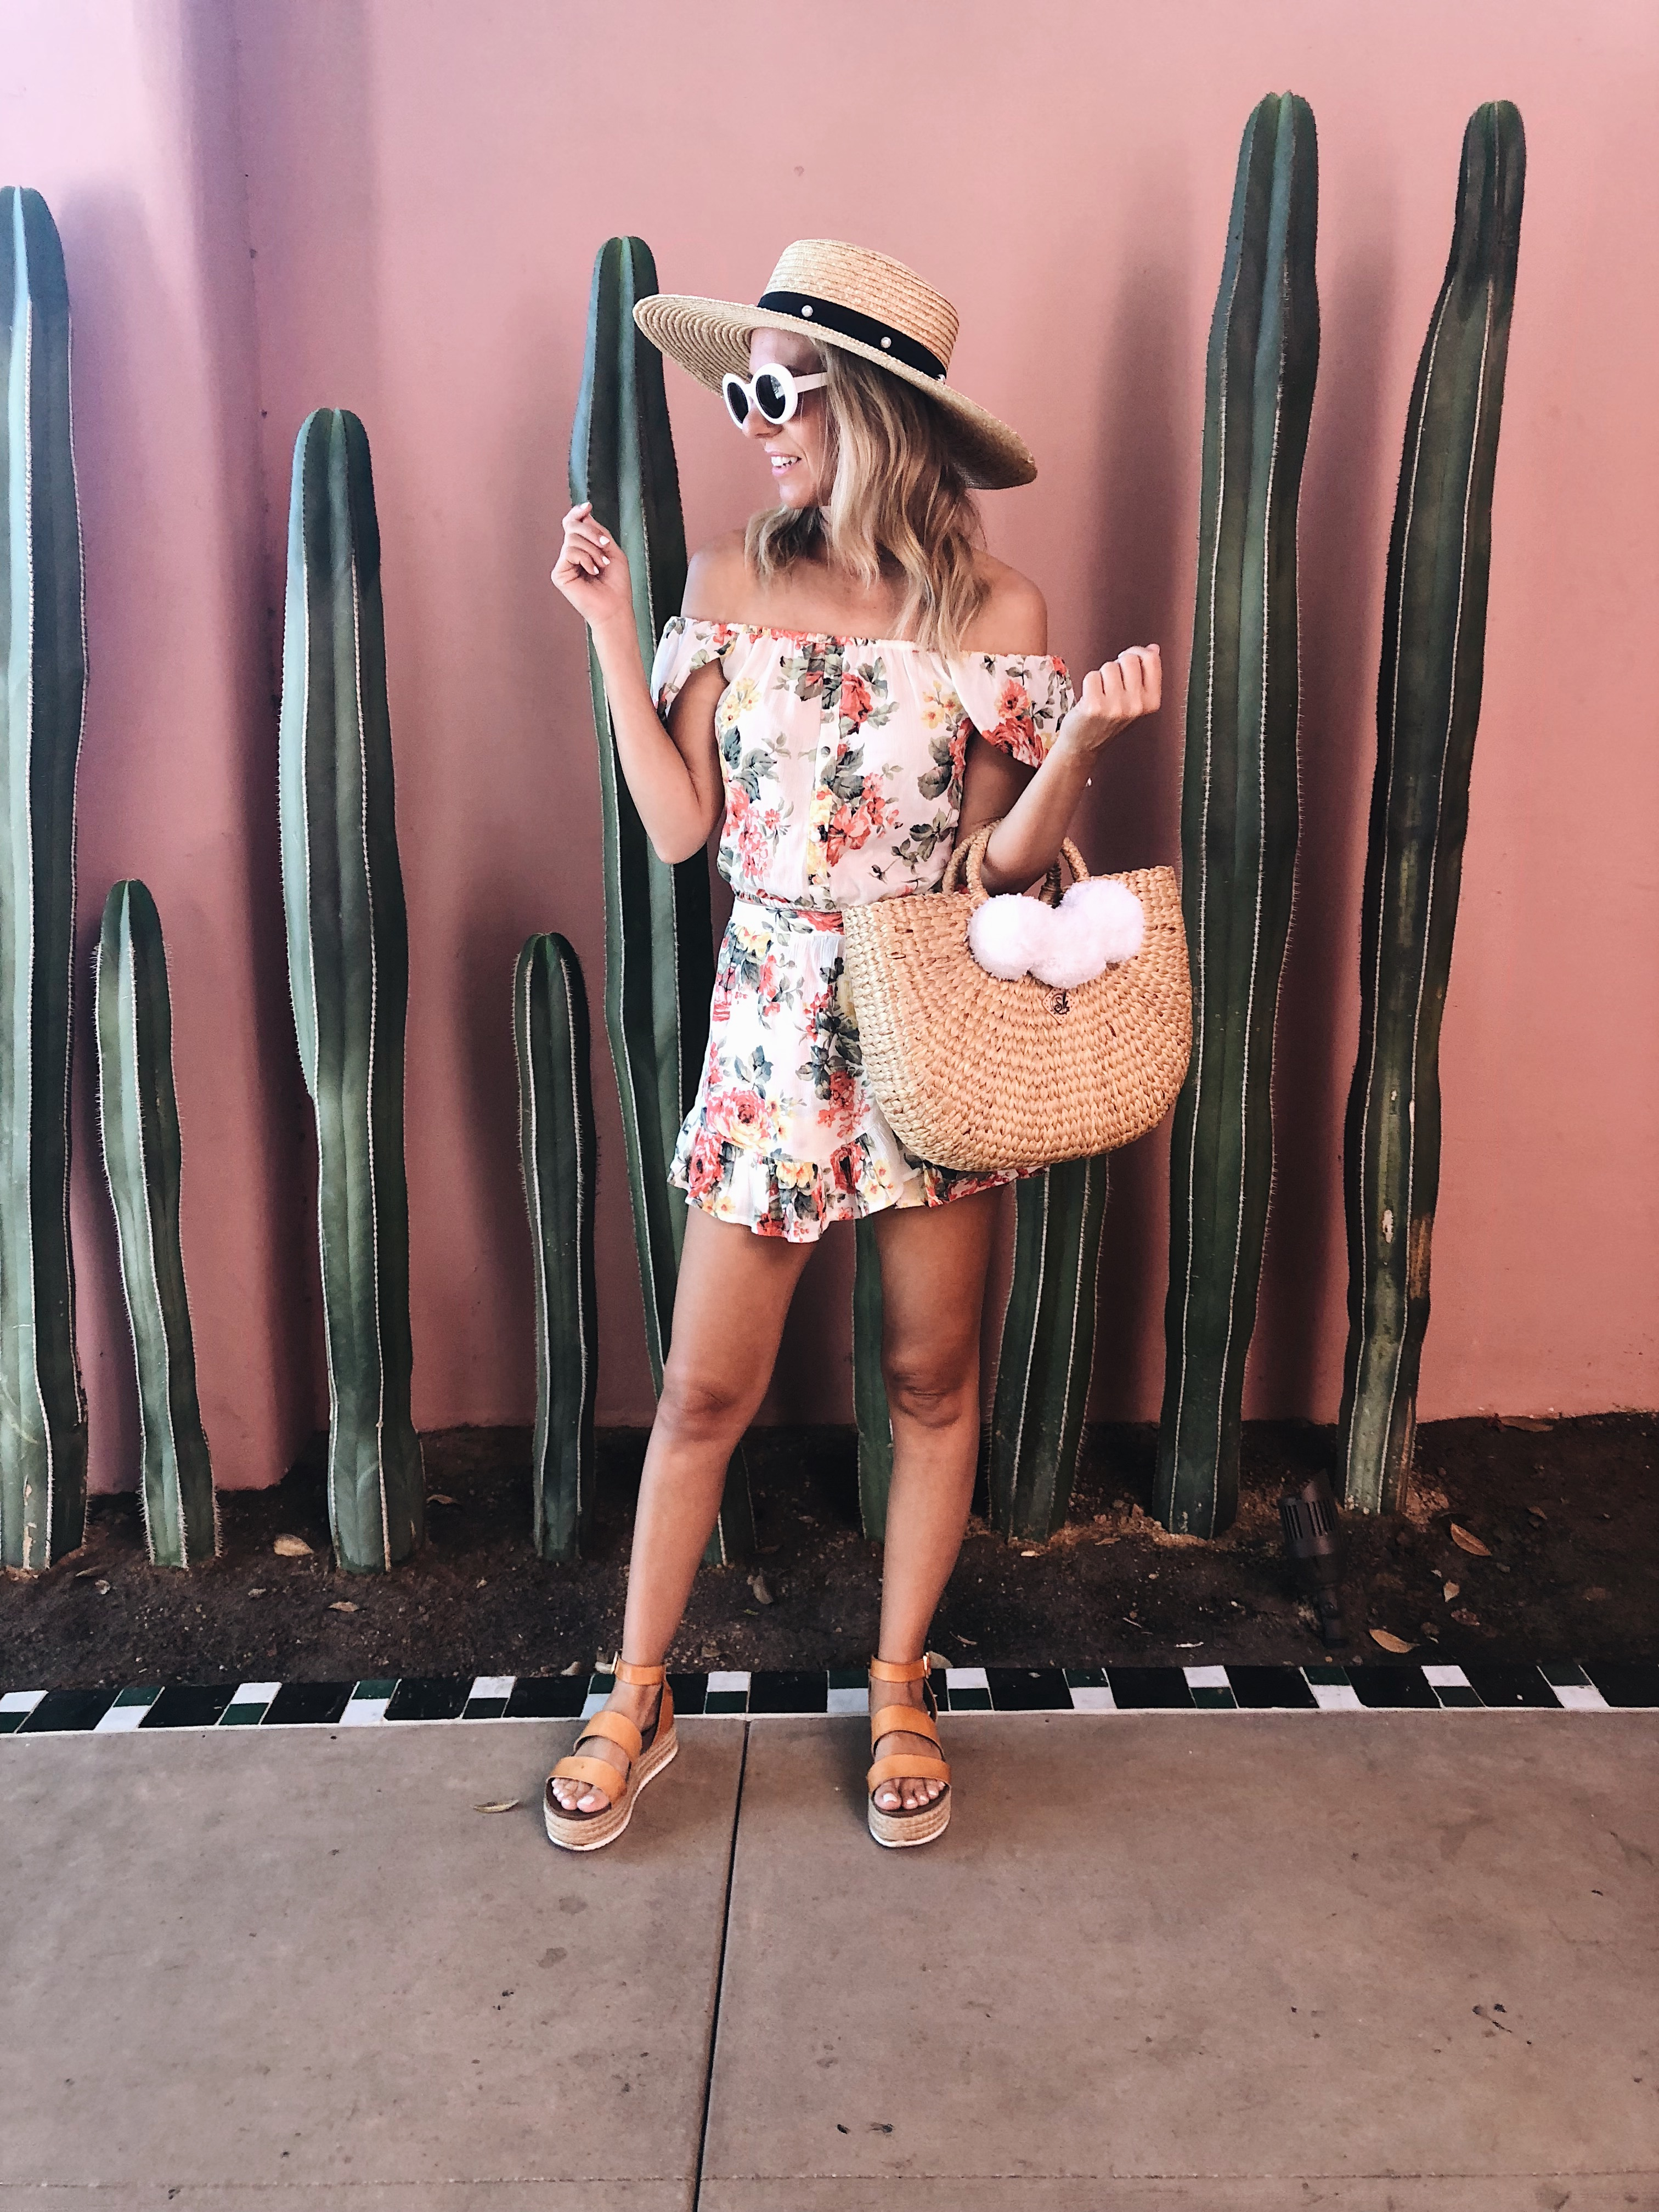 ANNIVERSARY WEEKEND GETAWAY AT THE SANDS HOTEL- Jaclyn De Leon Style + PALM SPRINGS HOTEL + BOHEMIAN + PINK WALL WITH CACTUS + RETRO SUNGLASSES + POM POM STRAW BEACH TOTE + WIDE BRIM STRAW HAT + PLATFORM SANDALS + ABERCROMBIE FLORAL MATCHING SET + SUMMER STYLE + VACATION + TRAVEL